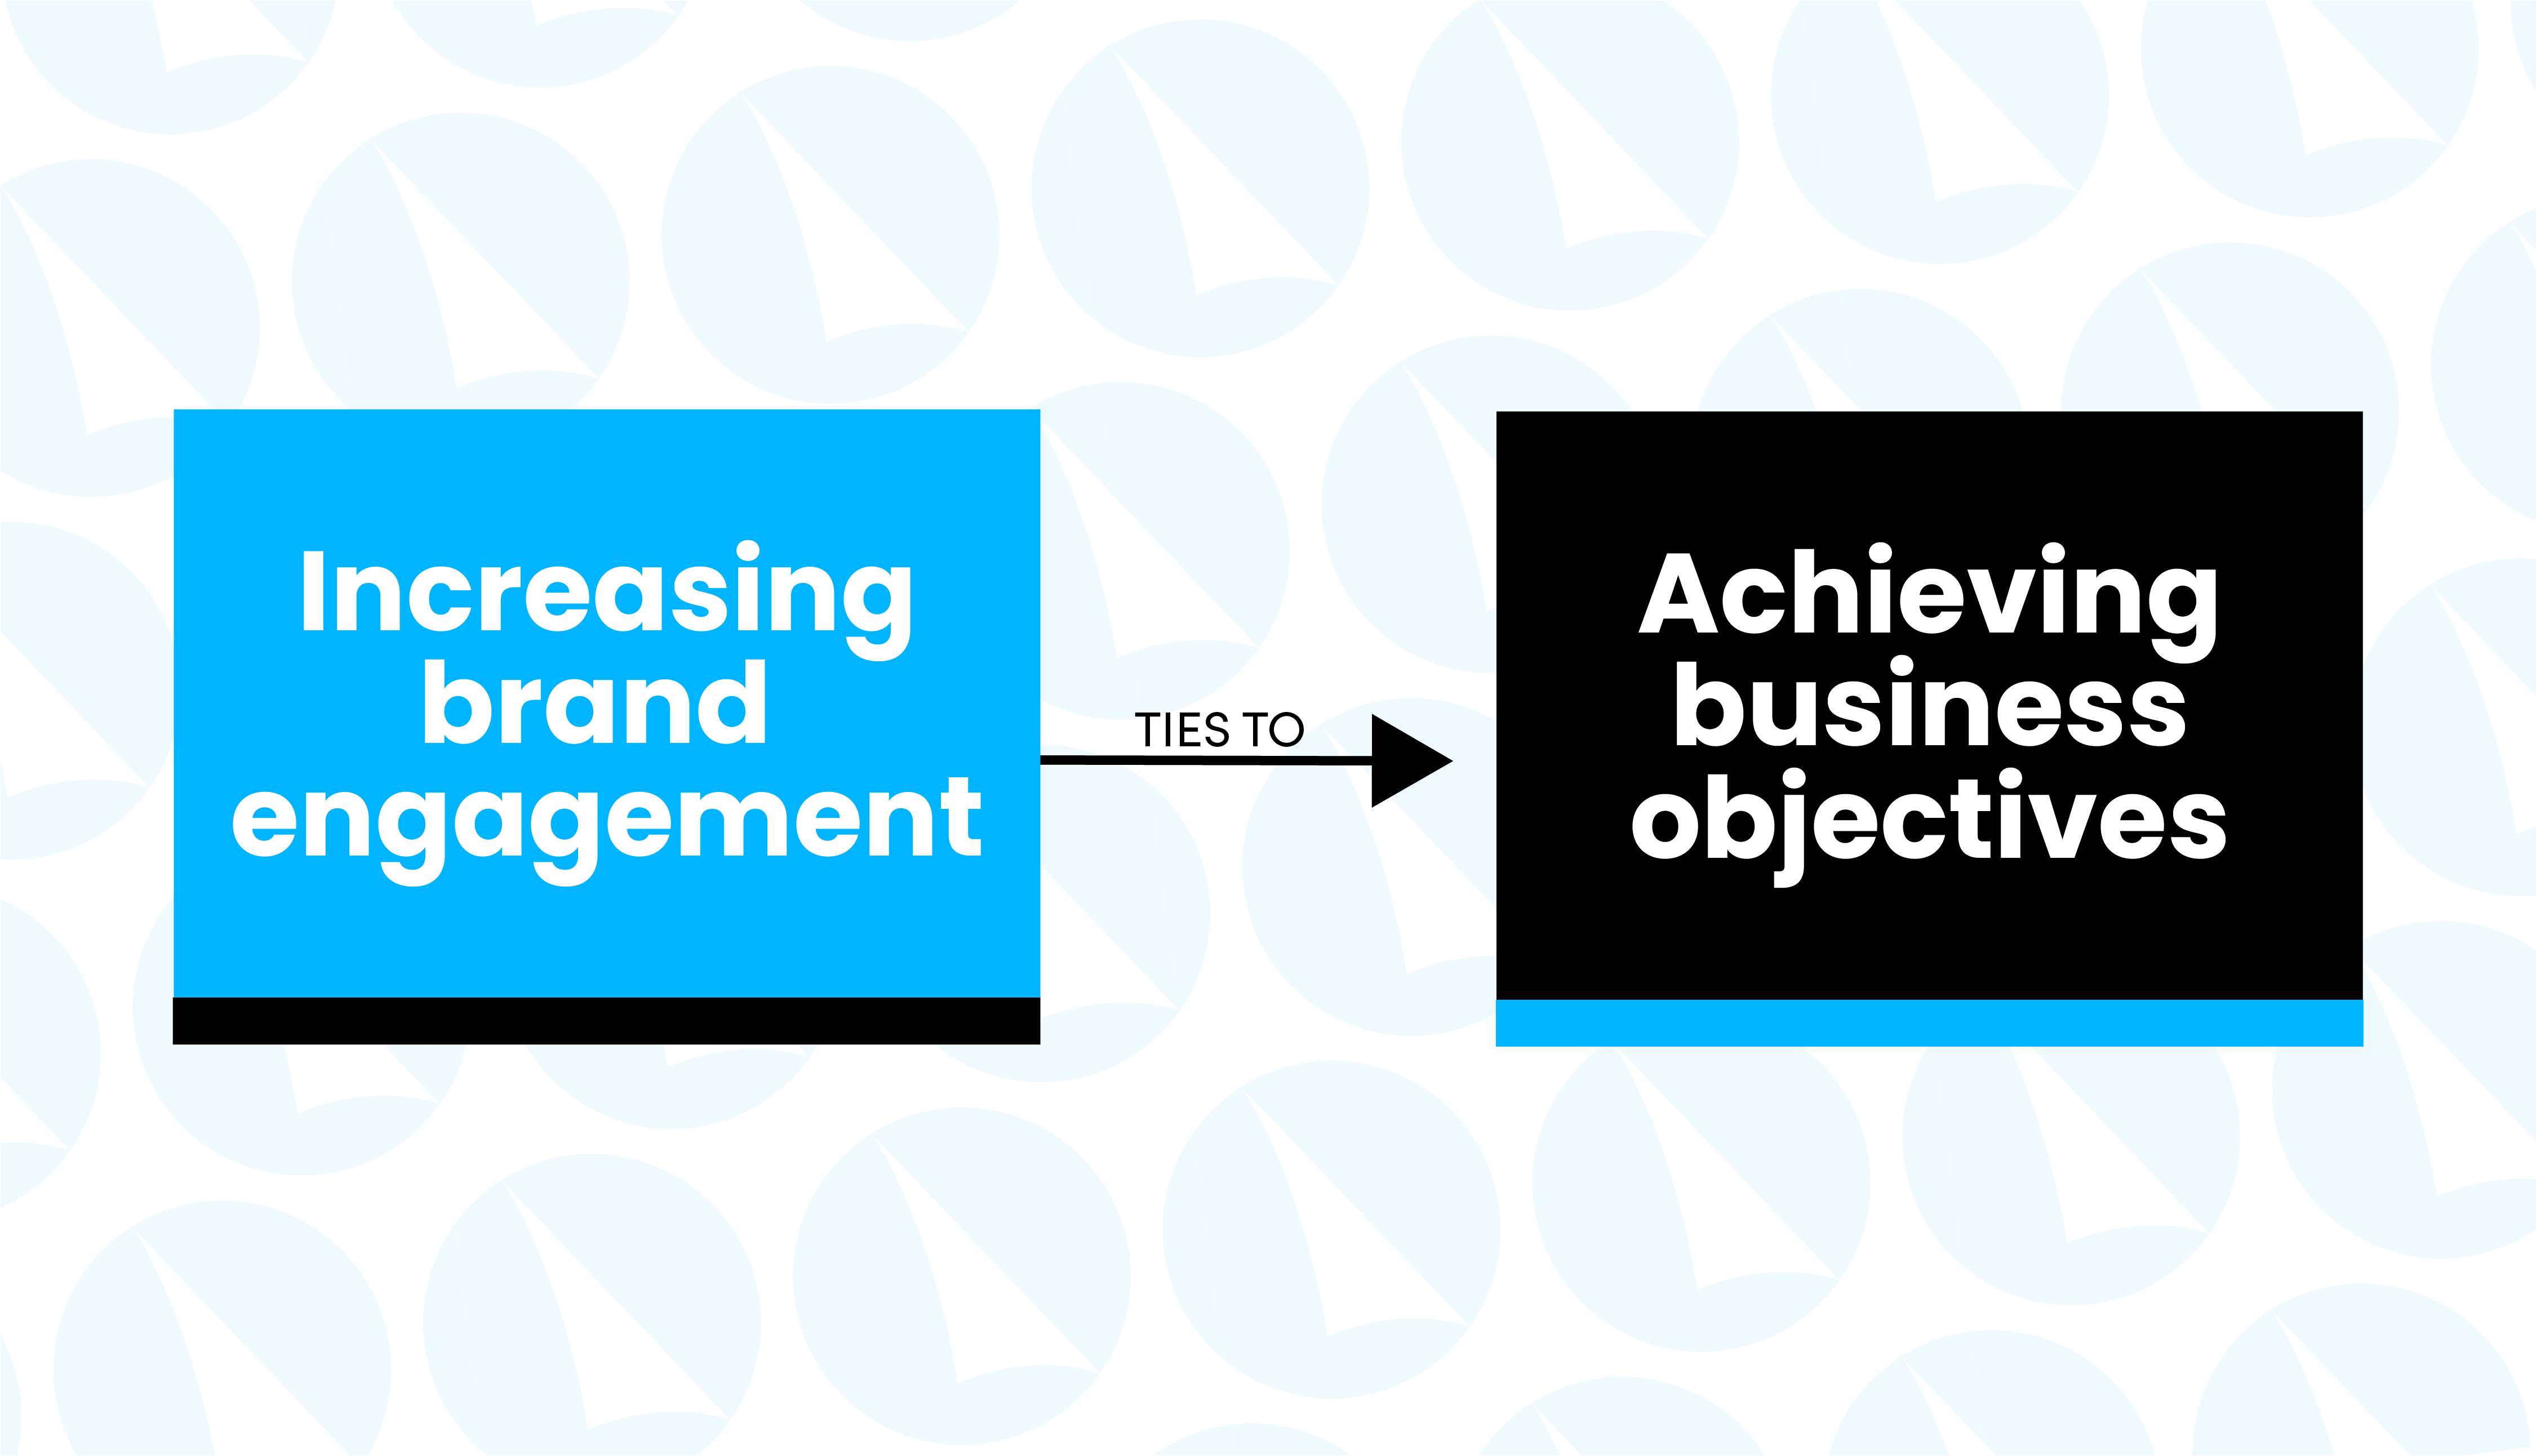 brand engagement leads to achieving business objectives